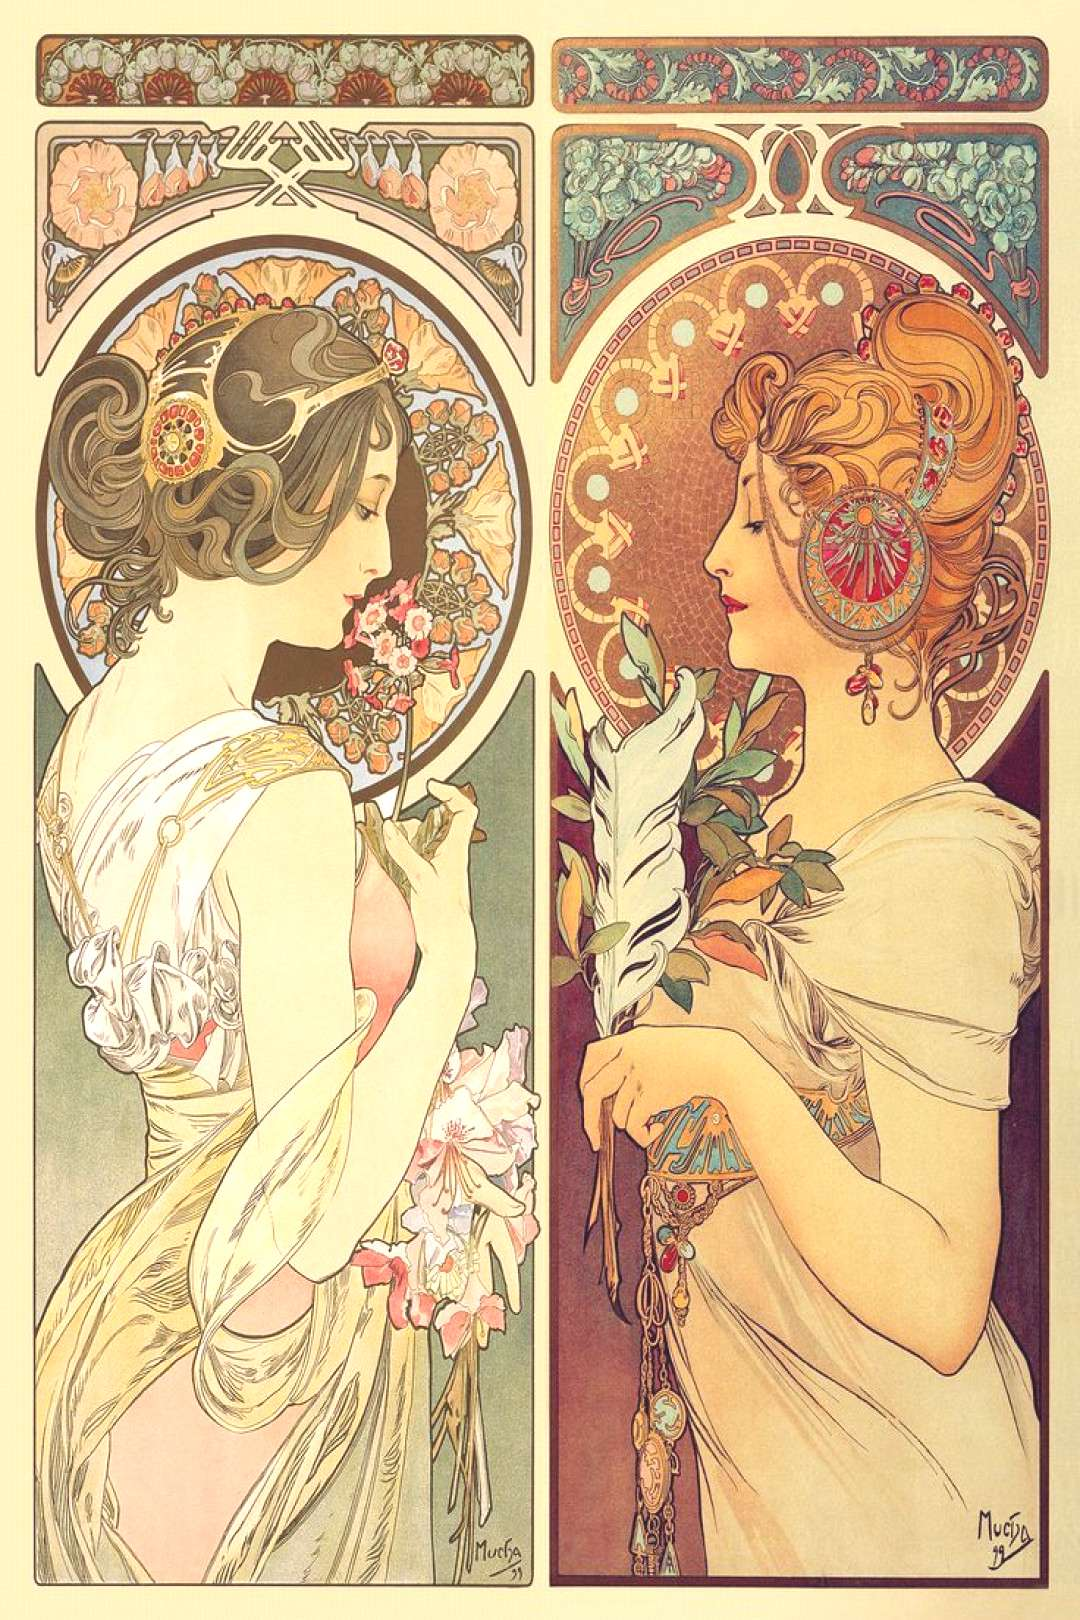 Mucha's Feather & Cowslip makes a great jigsaw puzzle gift for contempor... Mucha's Feather & C